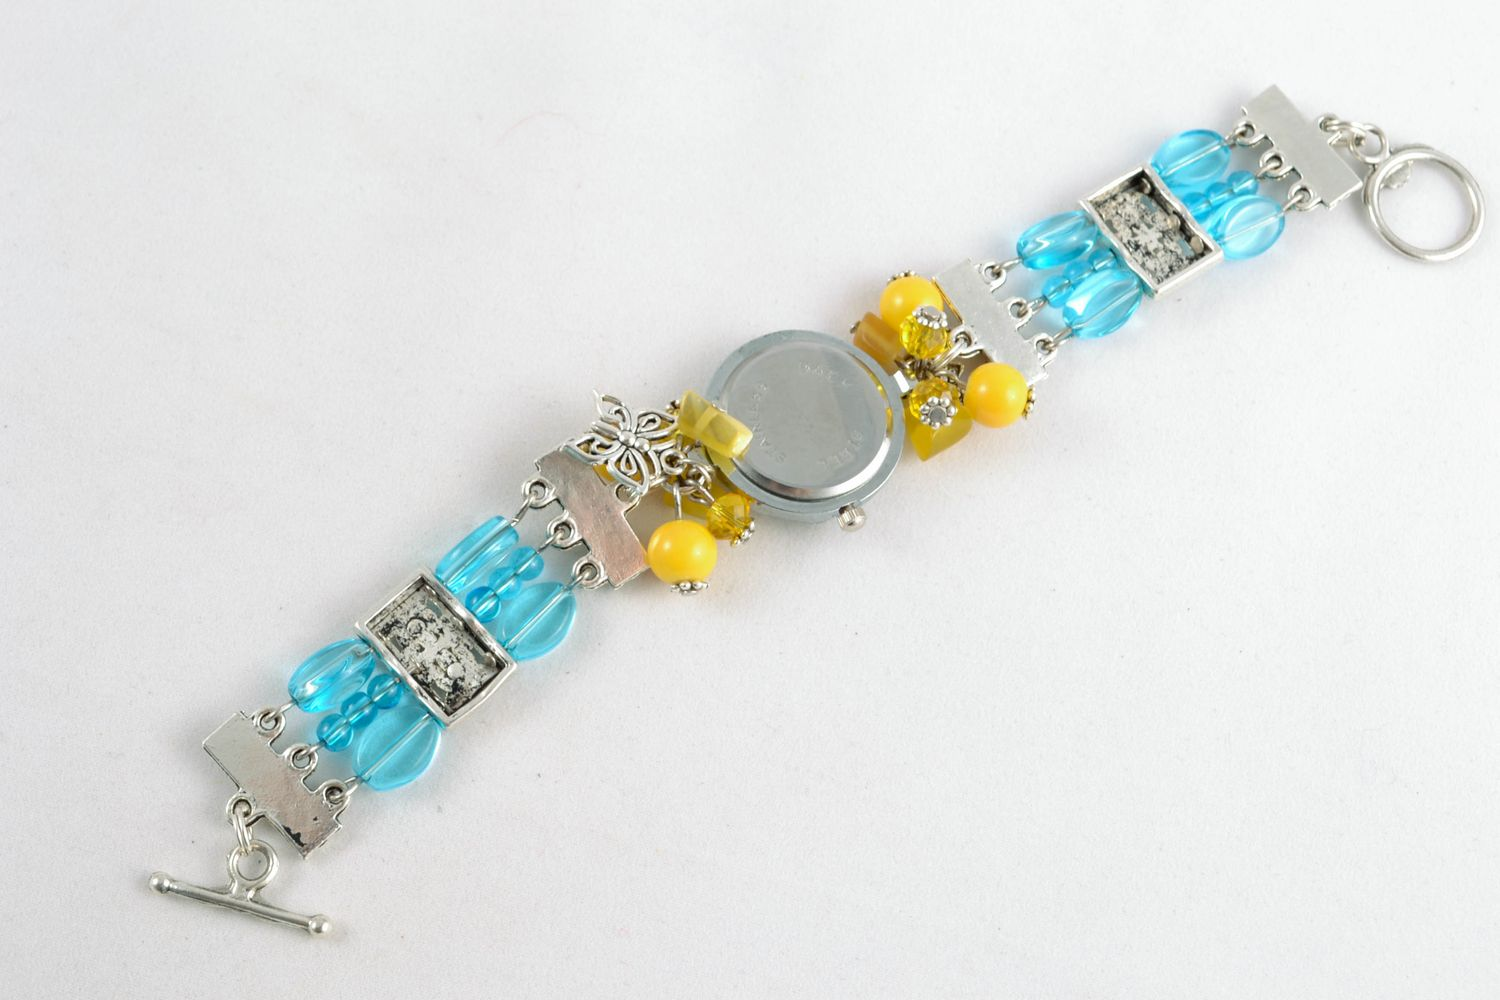 watches Wrist watch with charms - MADEheart.com